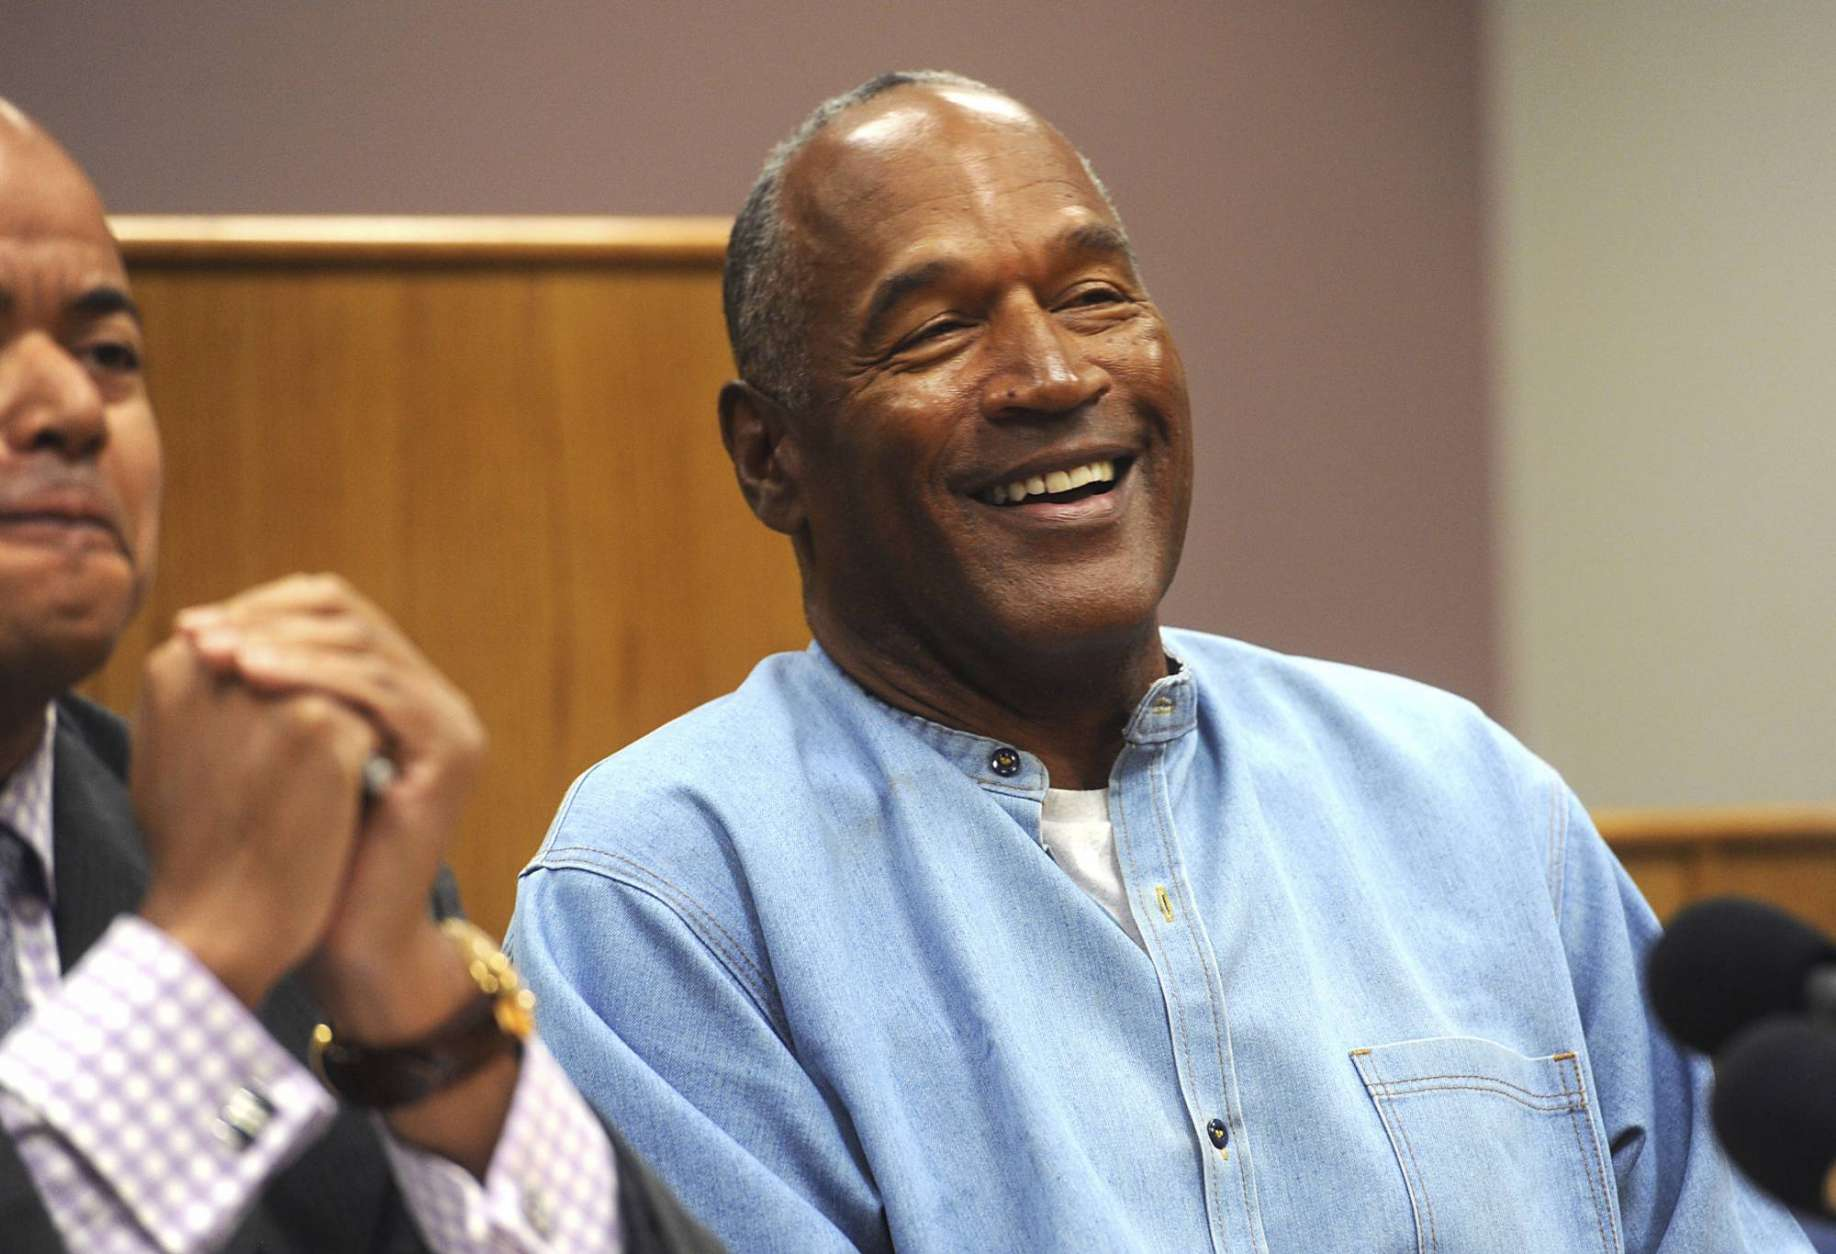 FILE - In this July 20, 2017, file photo, former NFL football star O.J. Simpson laughs as he appears via video for his parole hearing at the Lovelock Correctional Center in Lovelock, Nev. Simpson enjoys living in Las Vegas, and isn't planning to move to Florida like he told state parole officials before he was released in October from Nevada state prison. (Jason Bean/The Reno Gazette-Journal via AP, Pool, File)